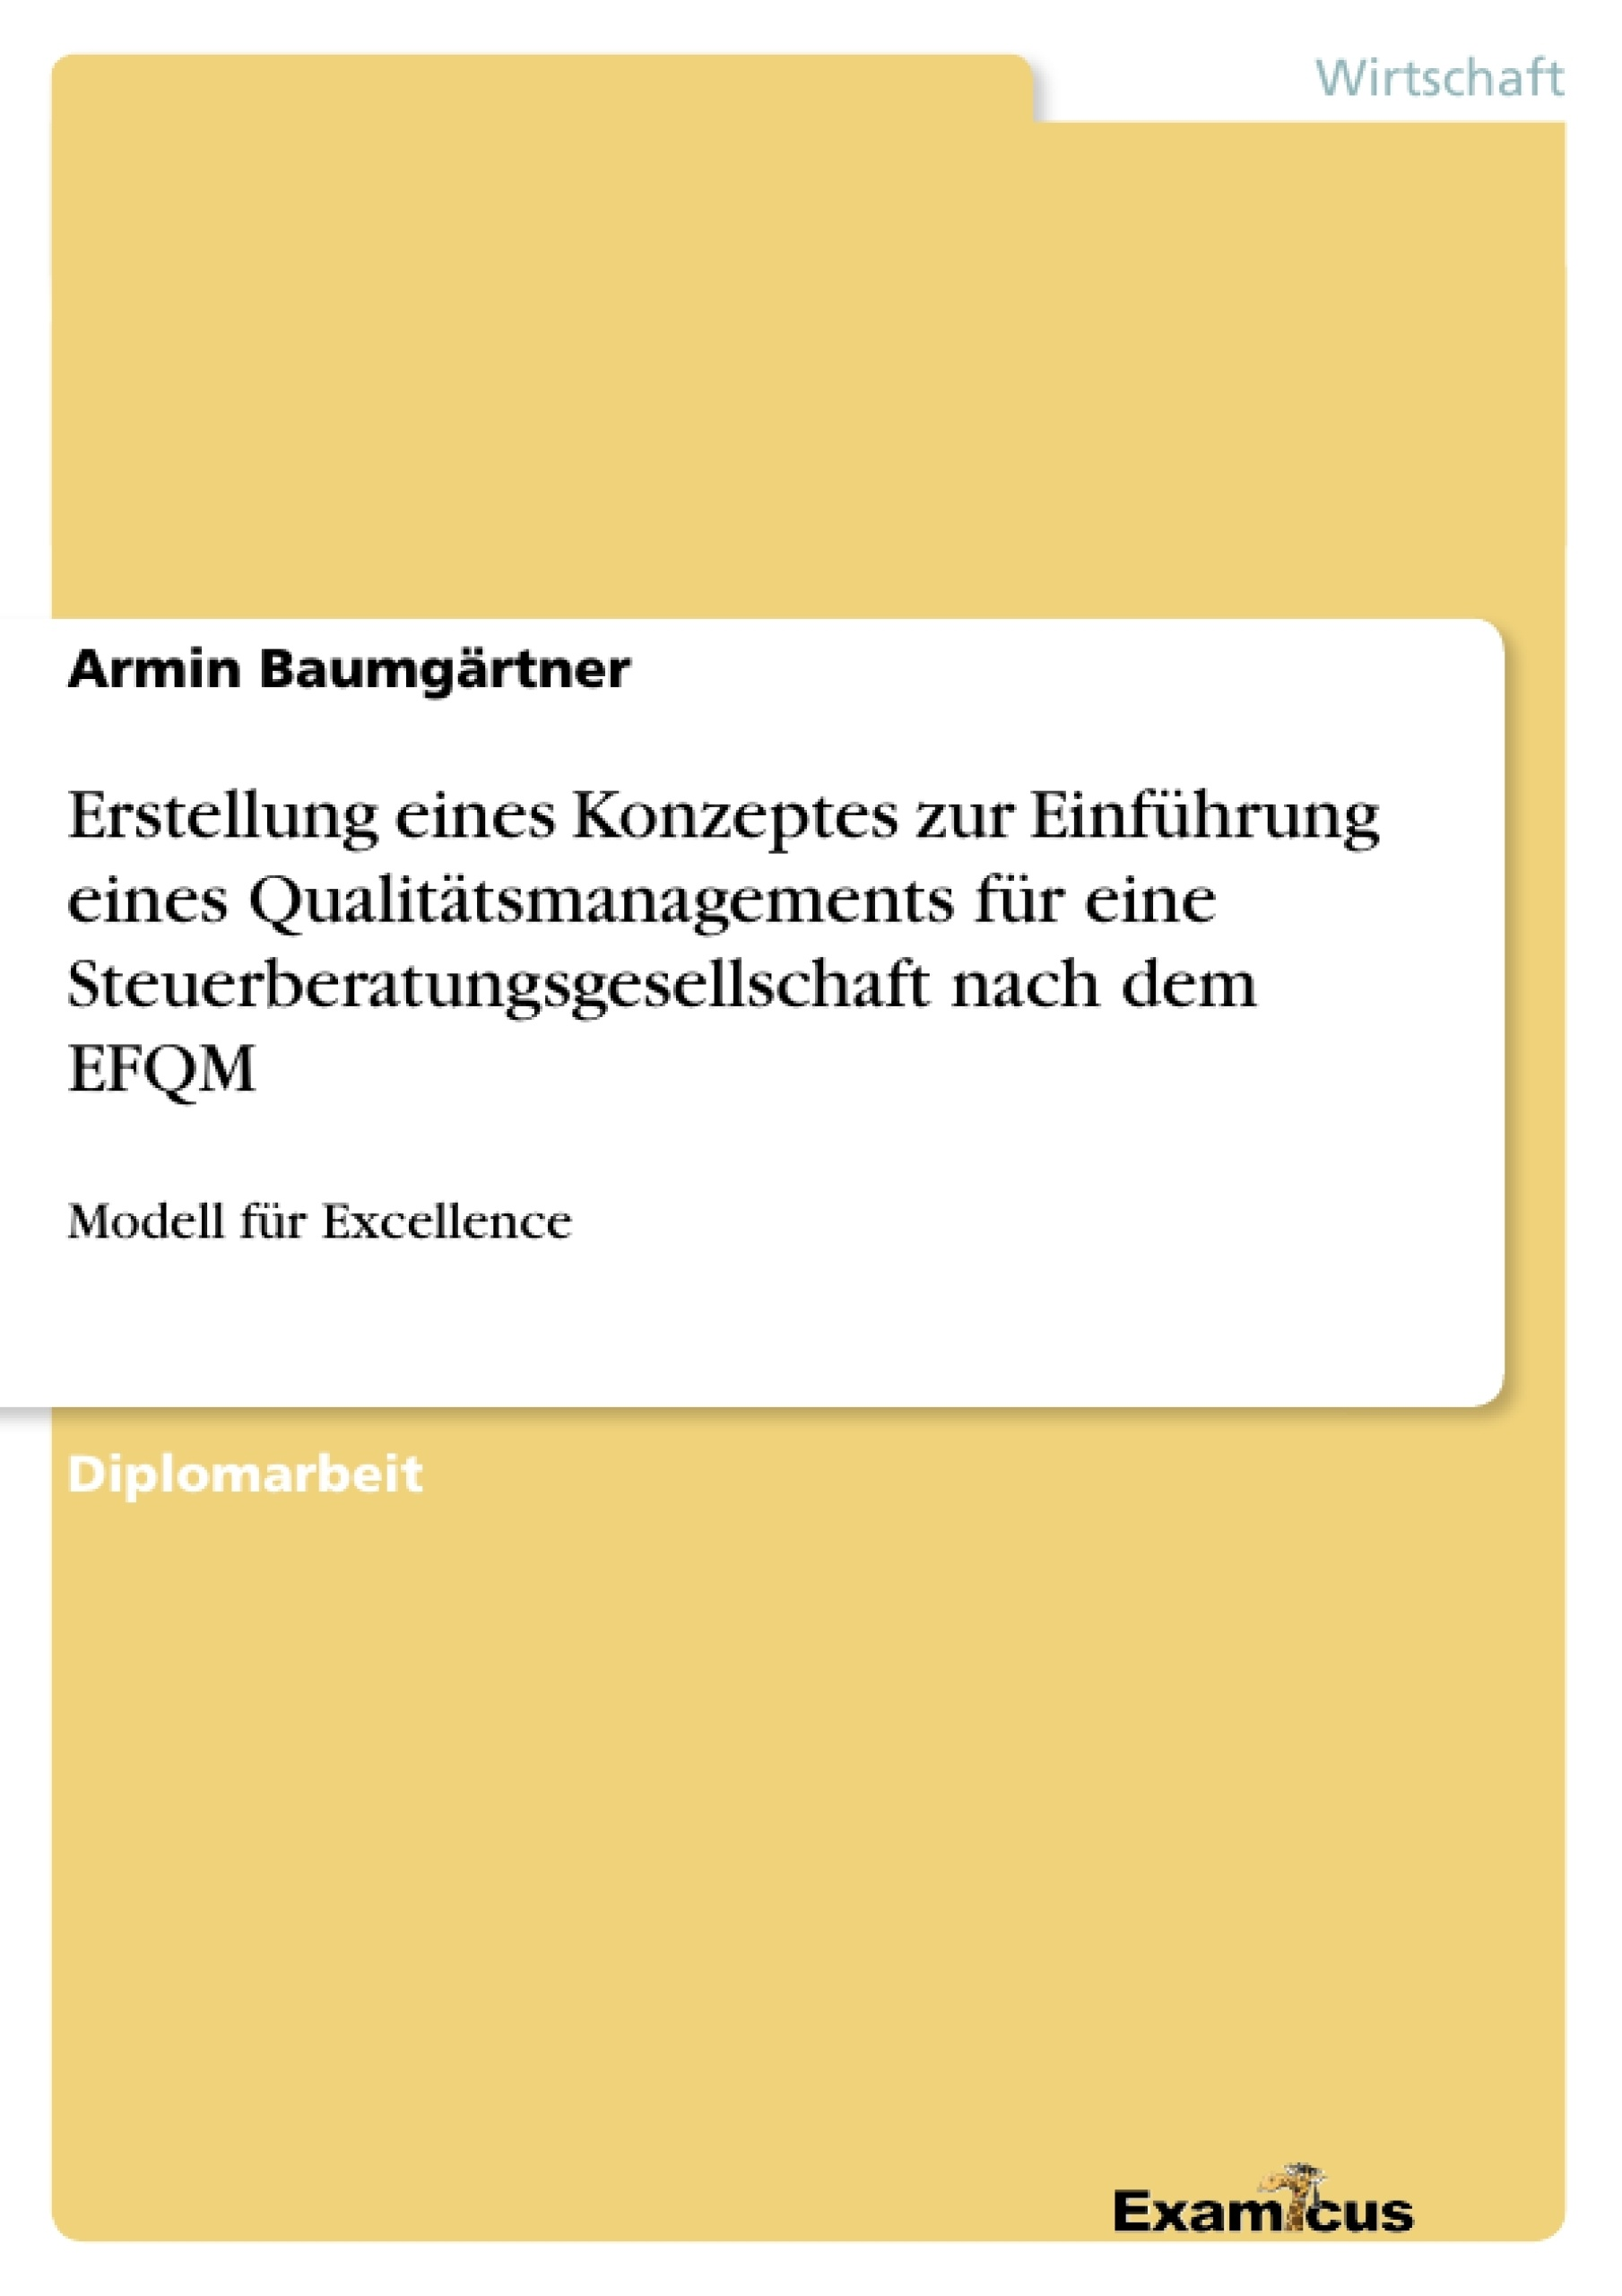 book Immobilienfinanzierung